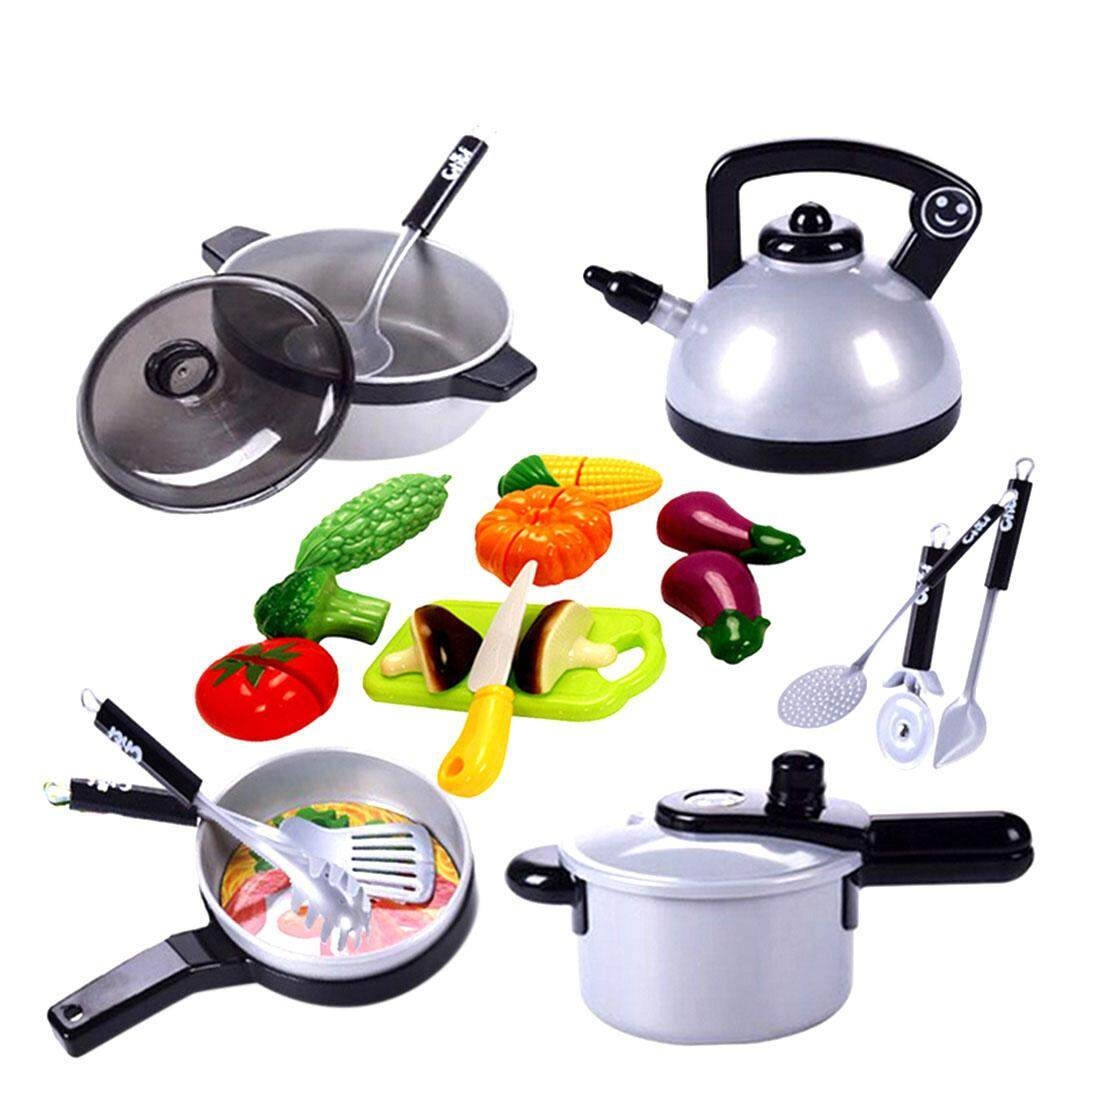 Classic Cooking Toys For Children Pretend Play Cutting Food Vegetable Set Kids Kitchen Educational Toy Play House Toys Best Gift 19pcs By Dragonlee.